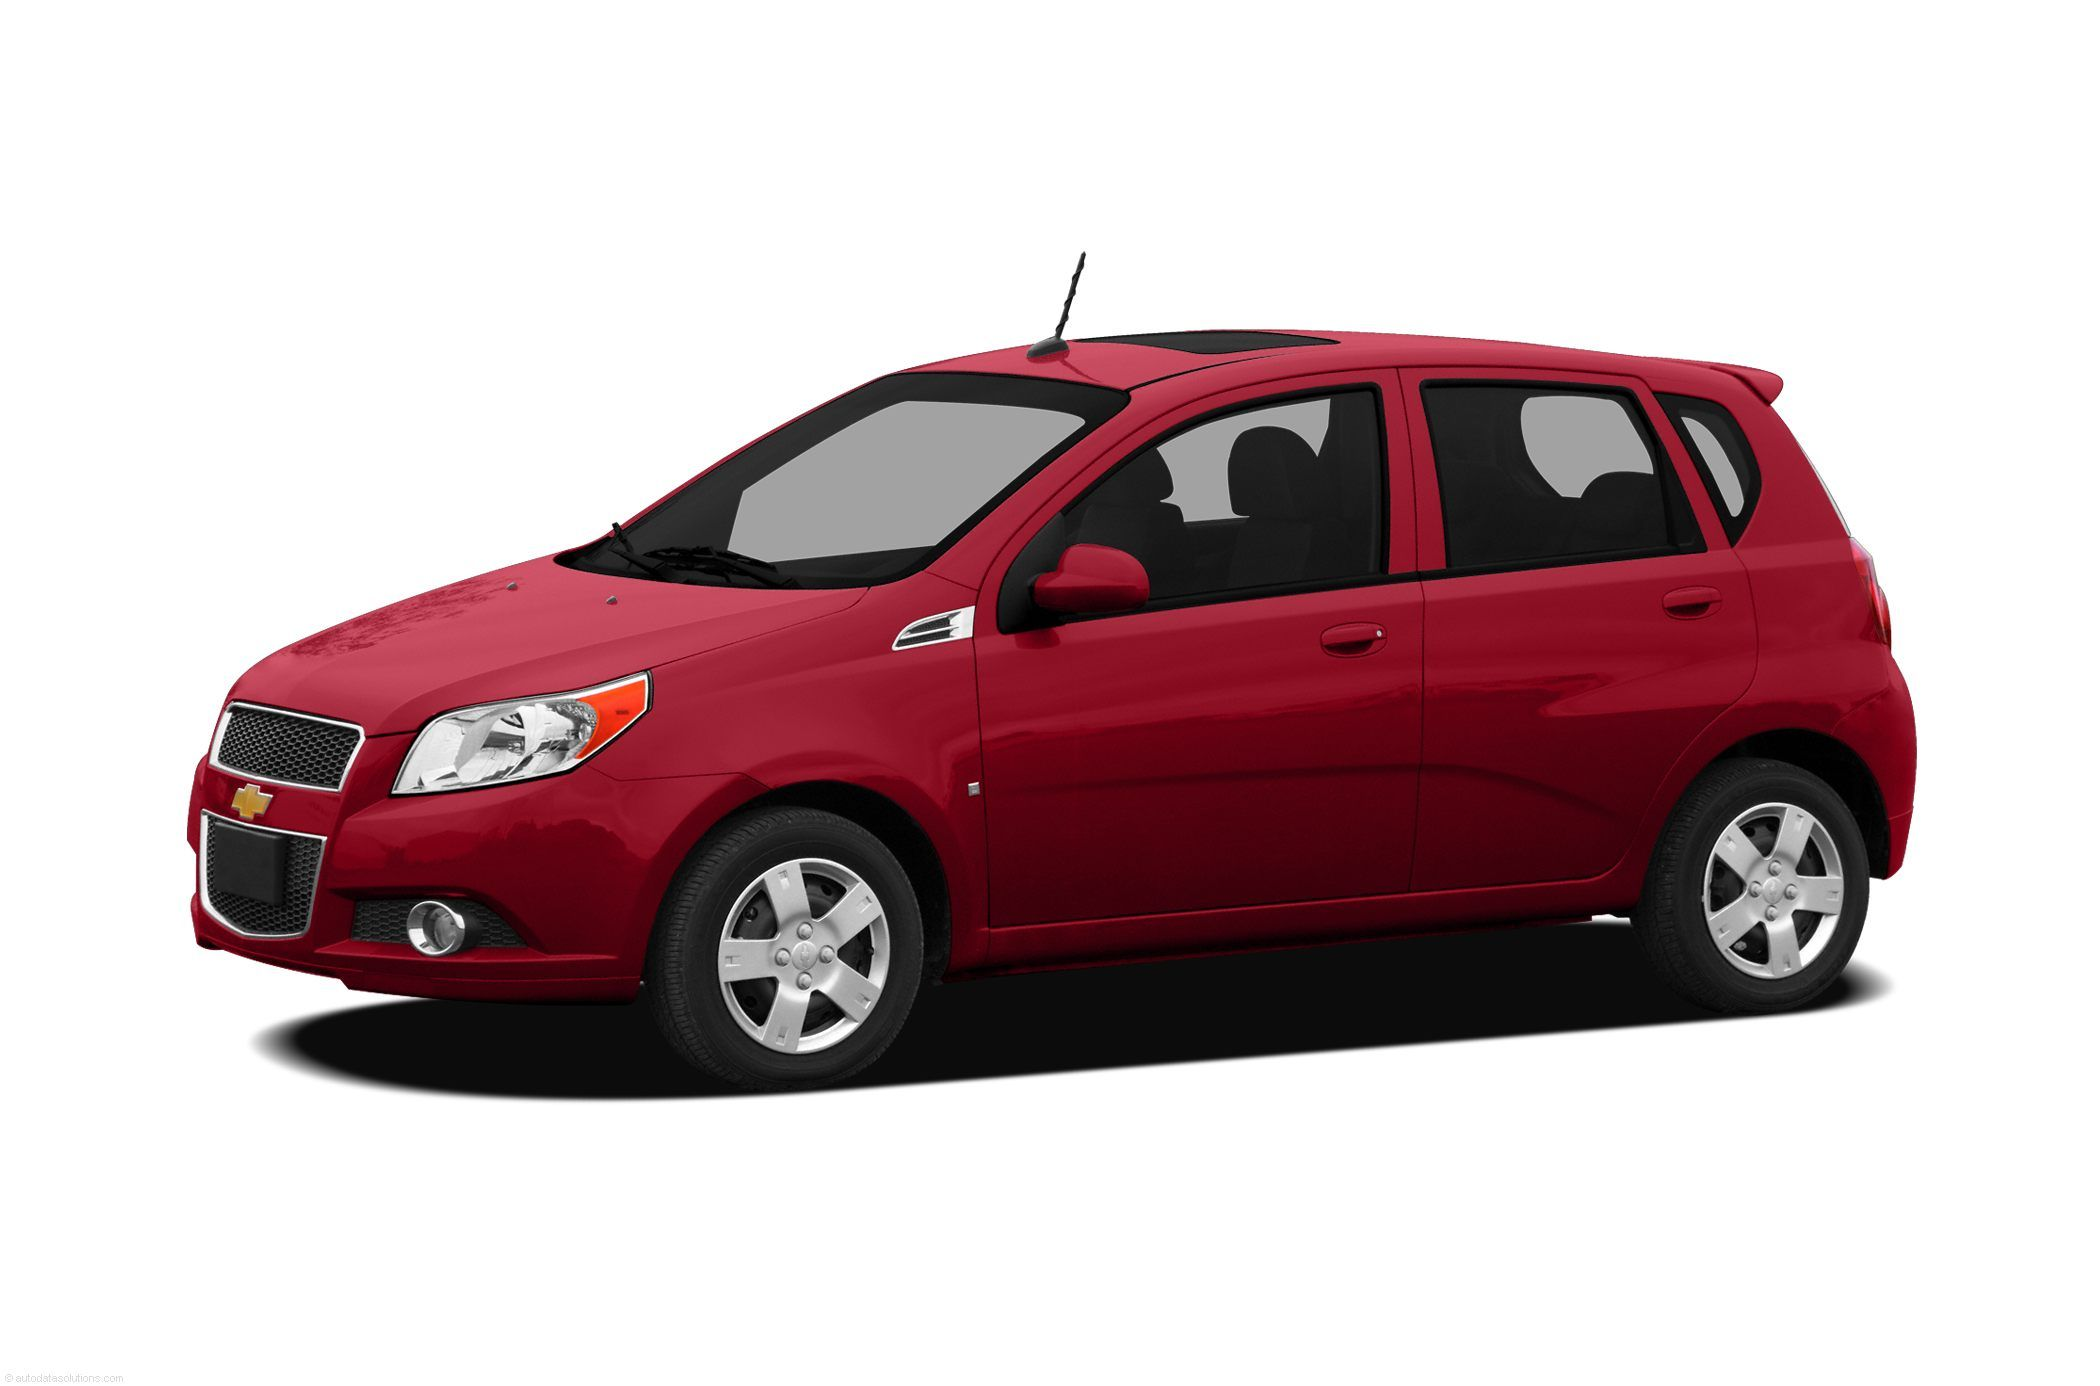 2011 Chevrolet Aveo Used 2011 Chevrolet Aveo Pricing Features Edmunds 2011 Chevrolet Aveo Colors Touch Paint Here S What Our Customers Are Saying Ab